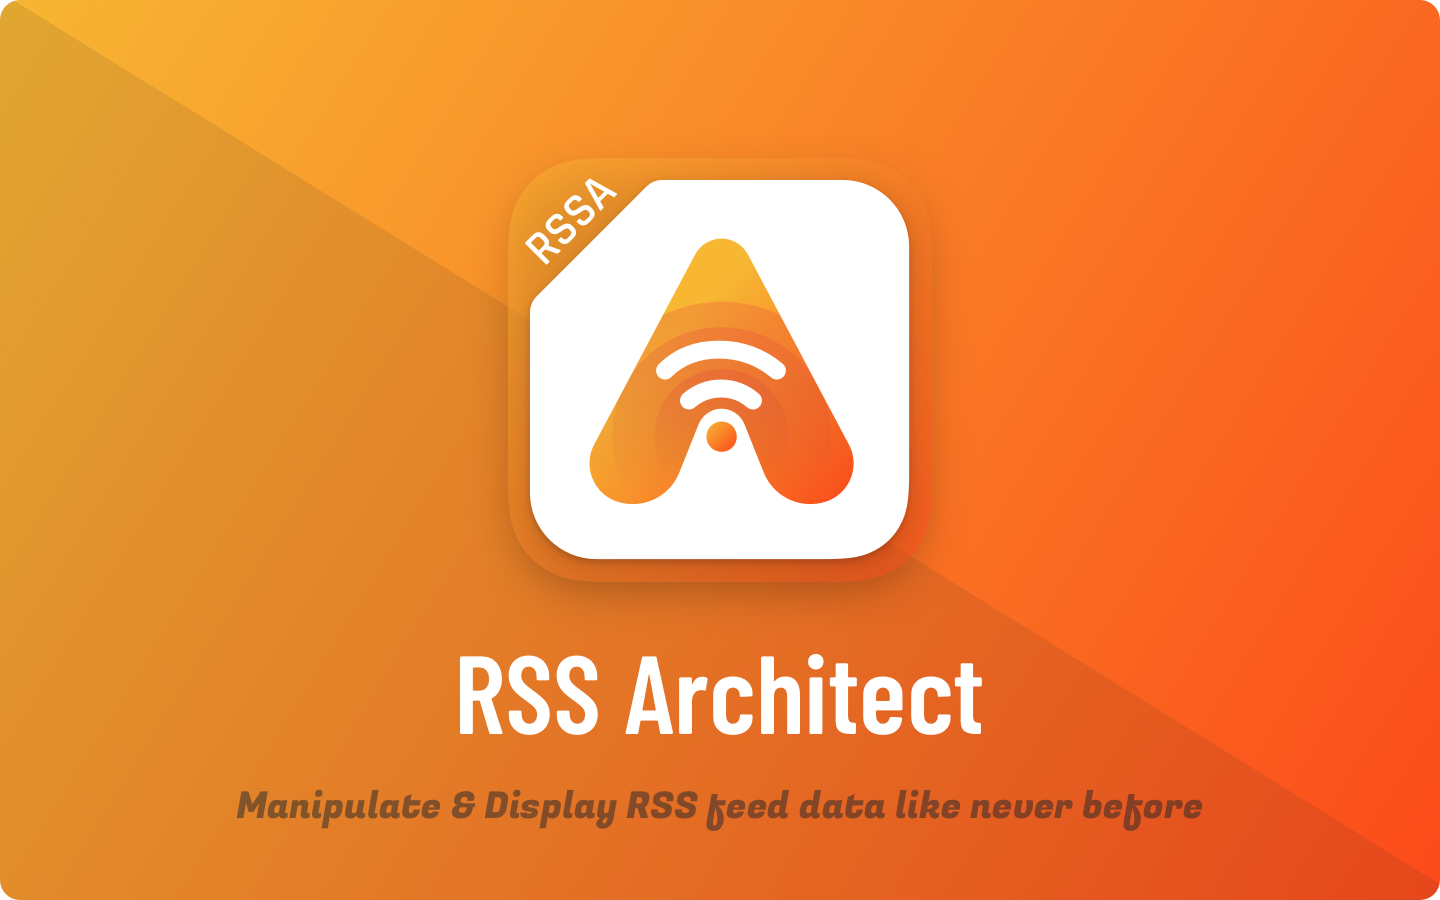 Rss architect